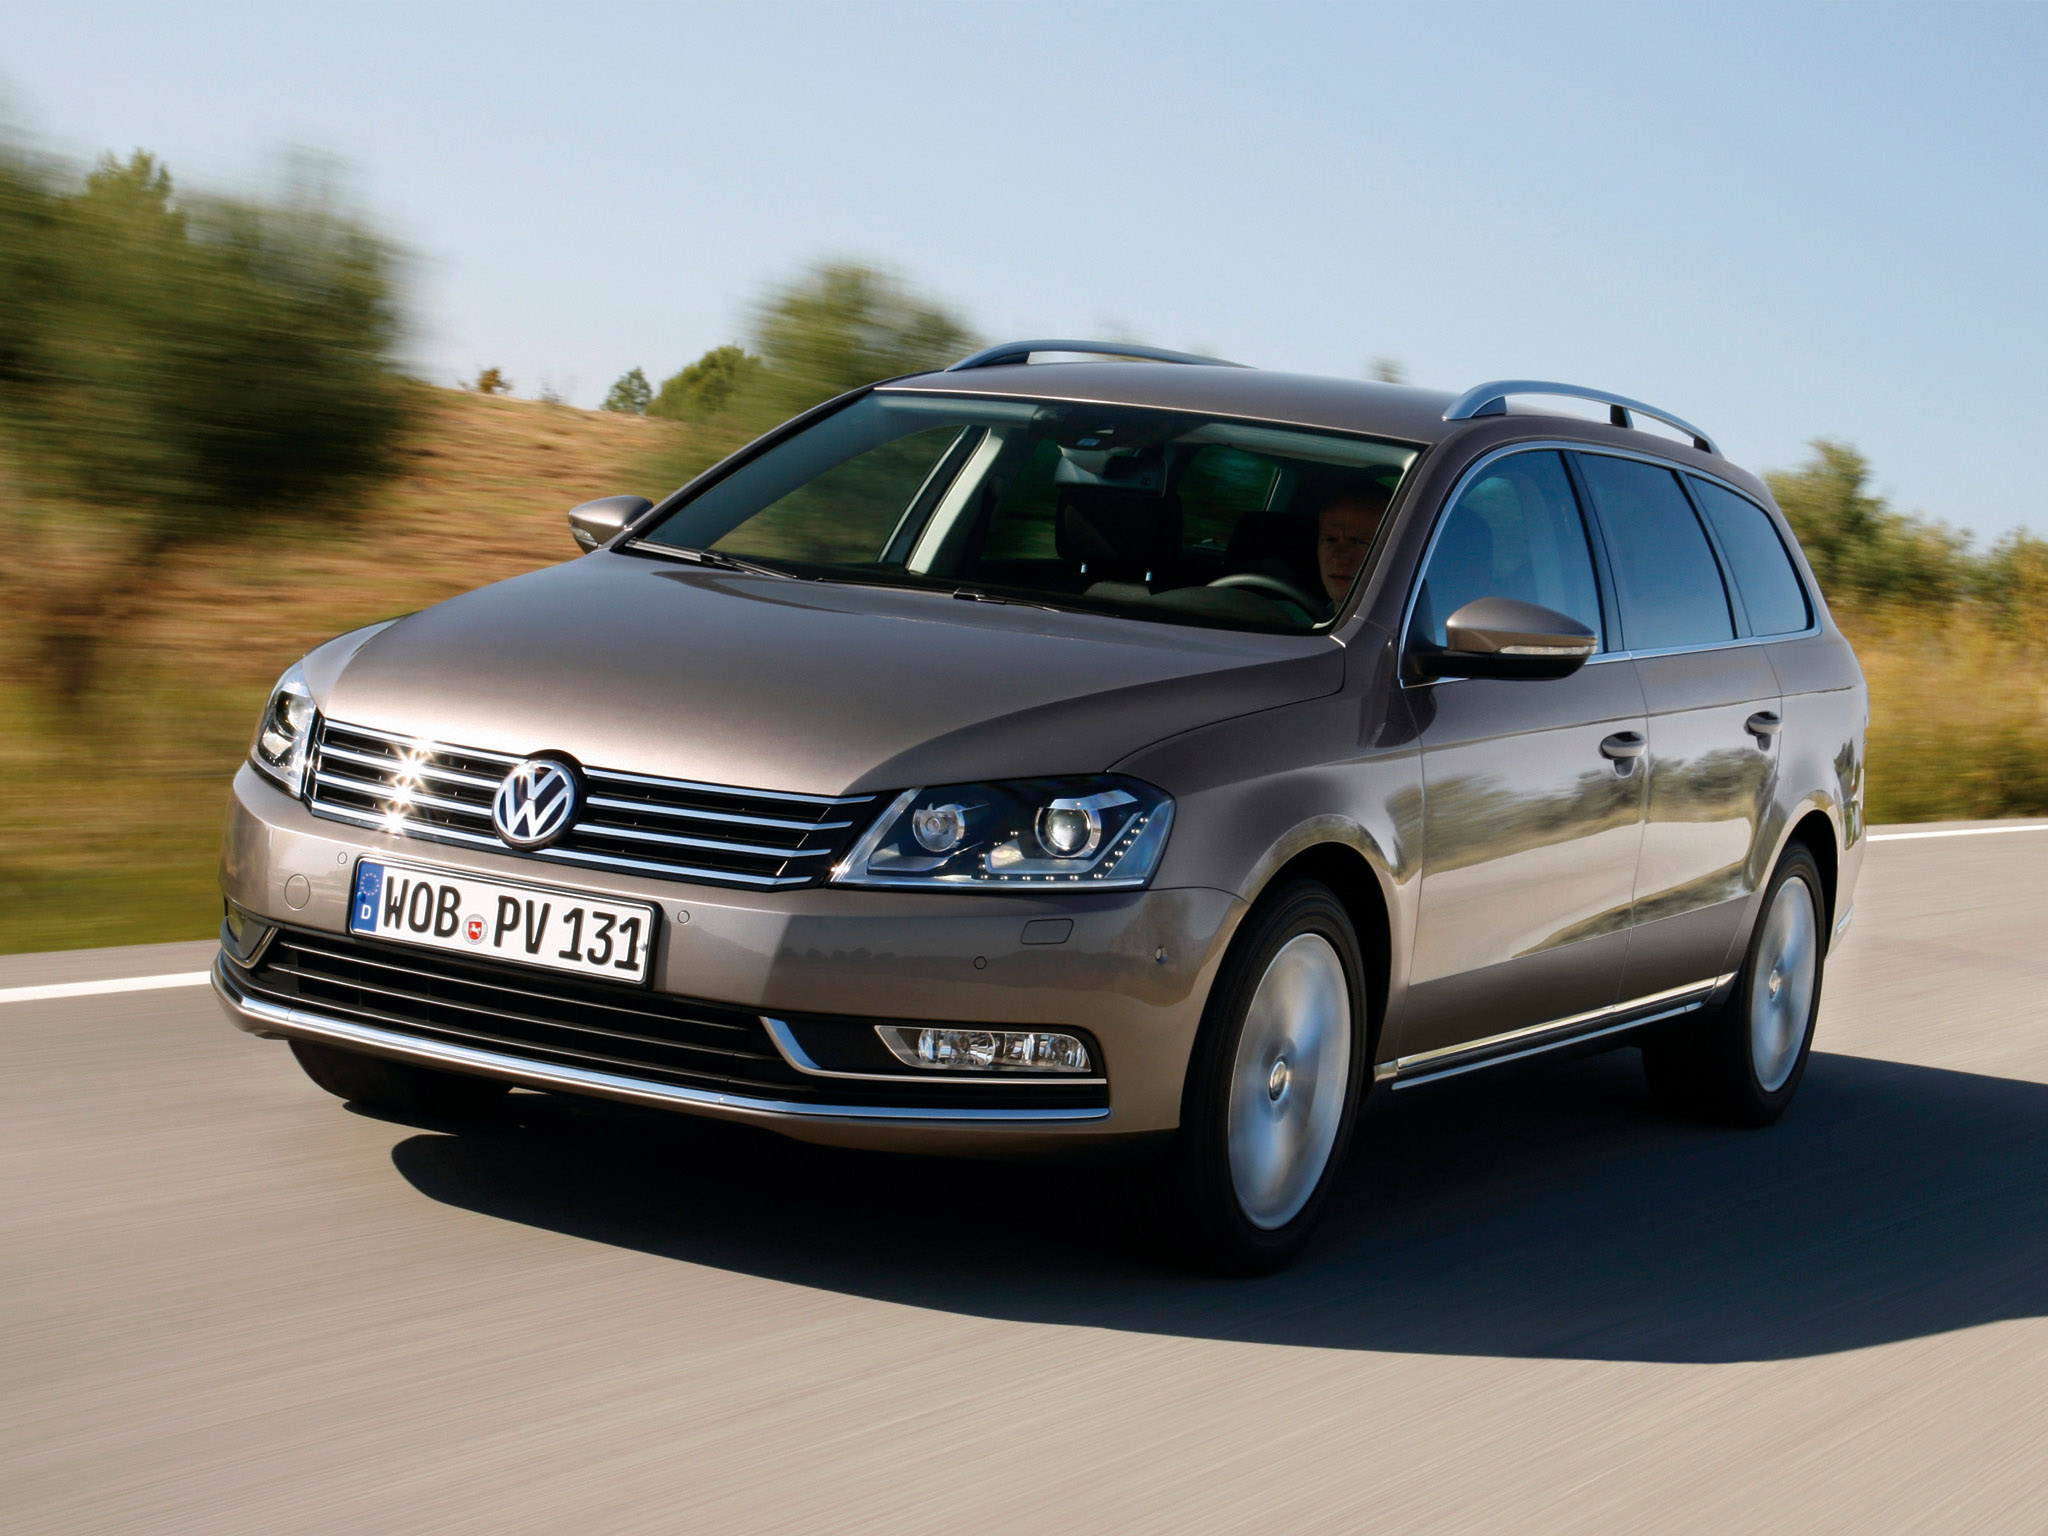 volkswagen passat tsi ecofuel variant b7 2010 volkswagen. Black Bedroom Furniture Sets. Home Design Ideas